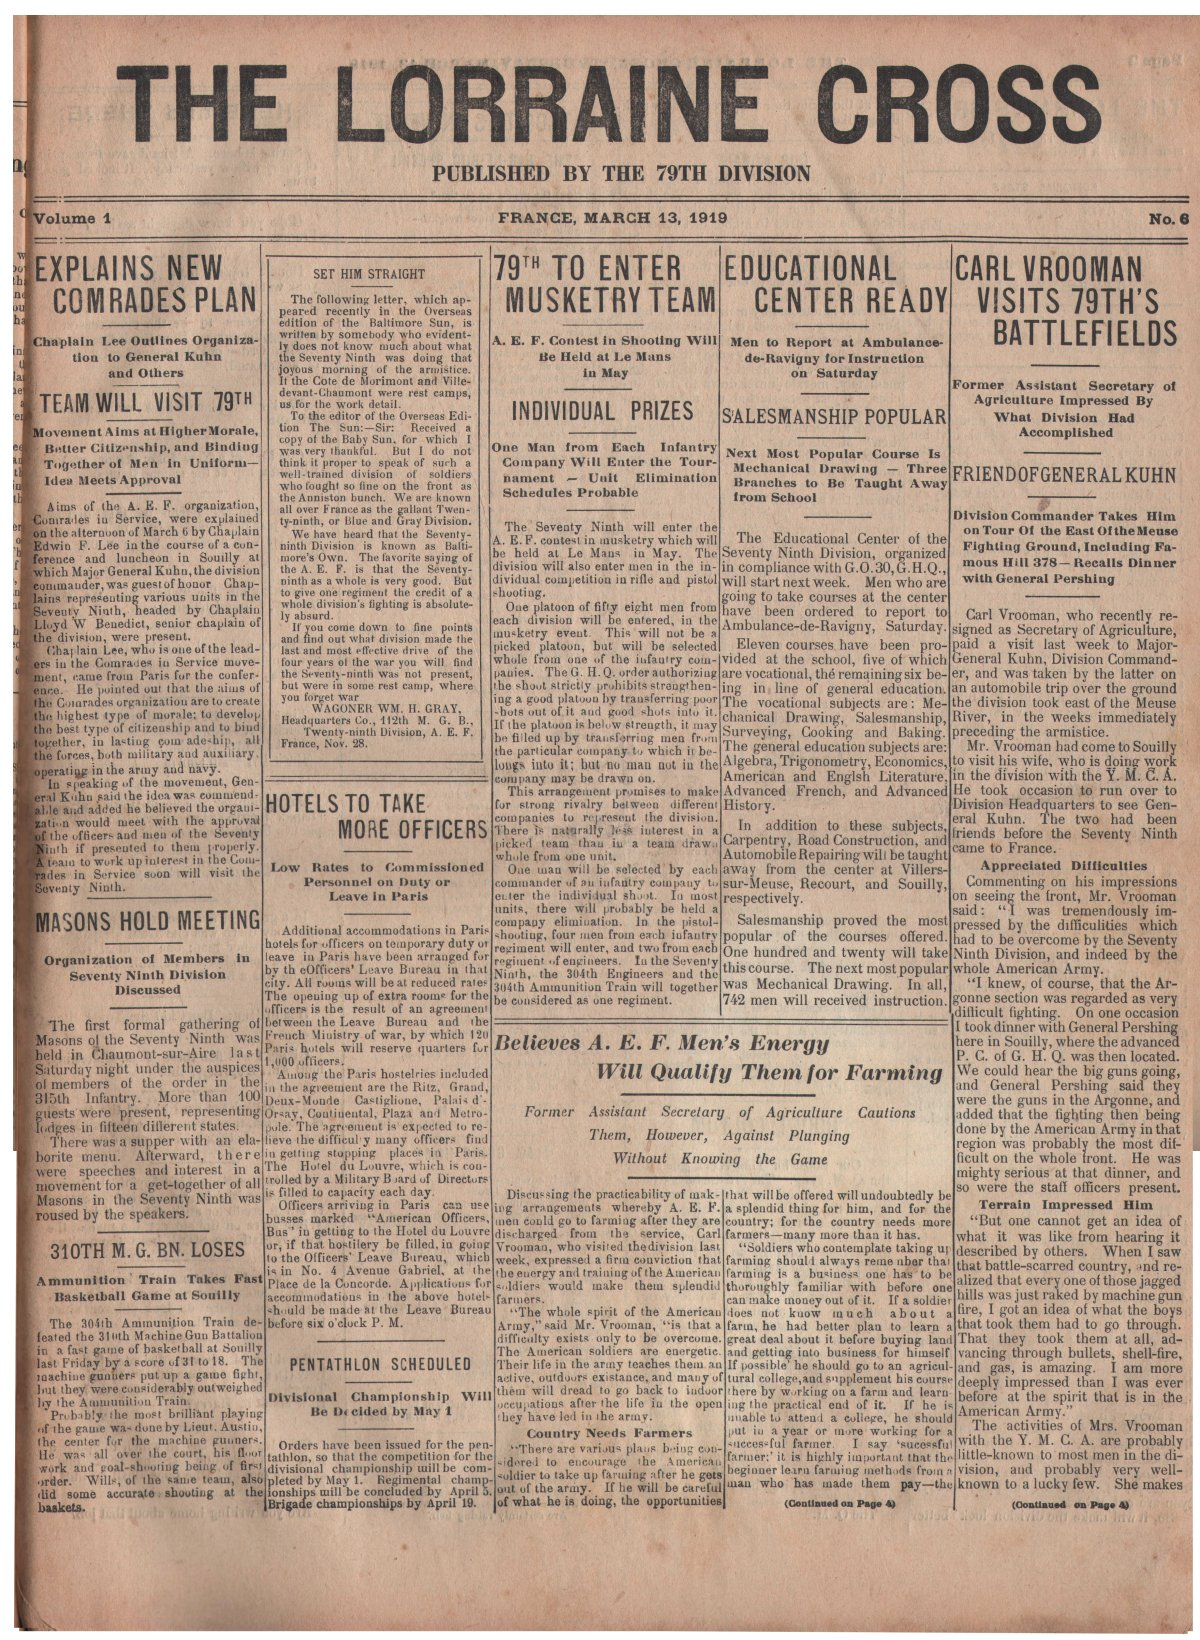 Lorraine Cross Newspaper Volume 1 Number 5 France March 13 1919 Page 1